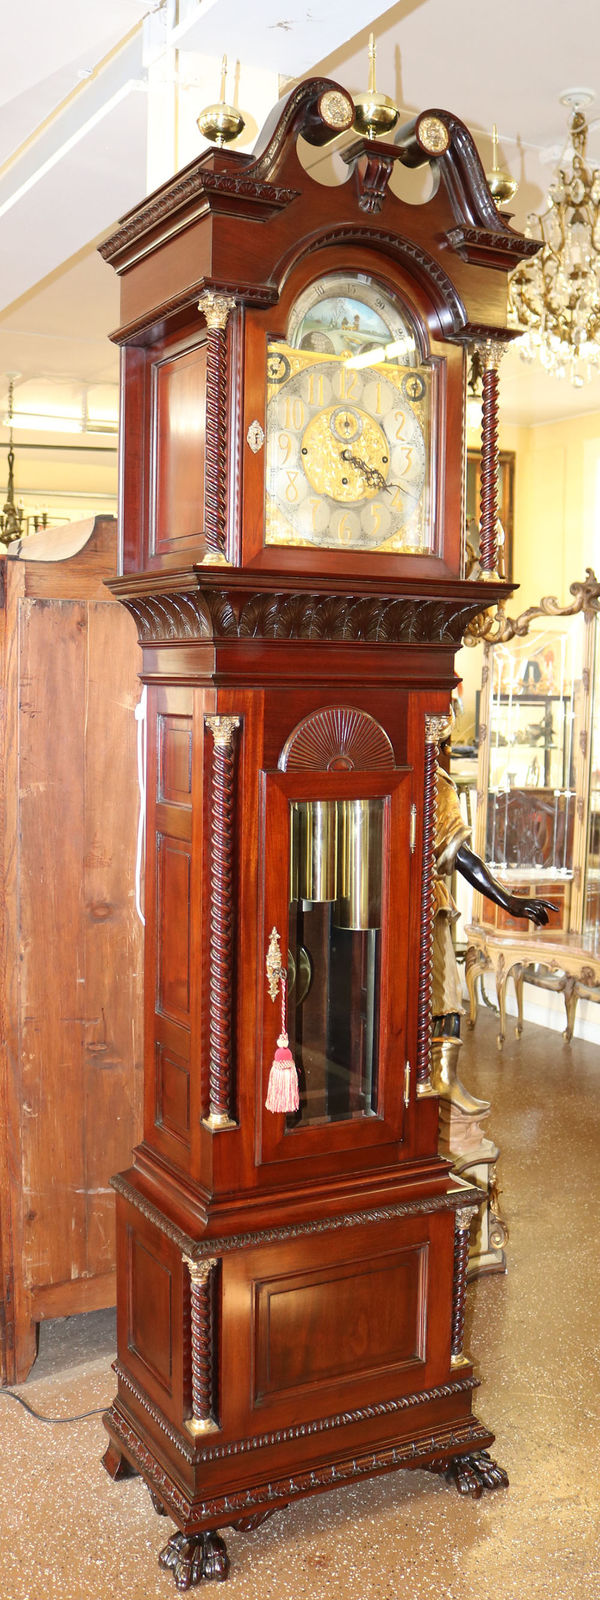 Restored Walter Durfee Model 18 Mahogany 9 Tube Grandfather Tall Case Clock MINT